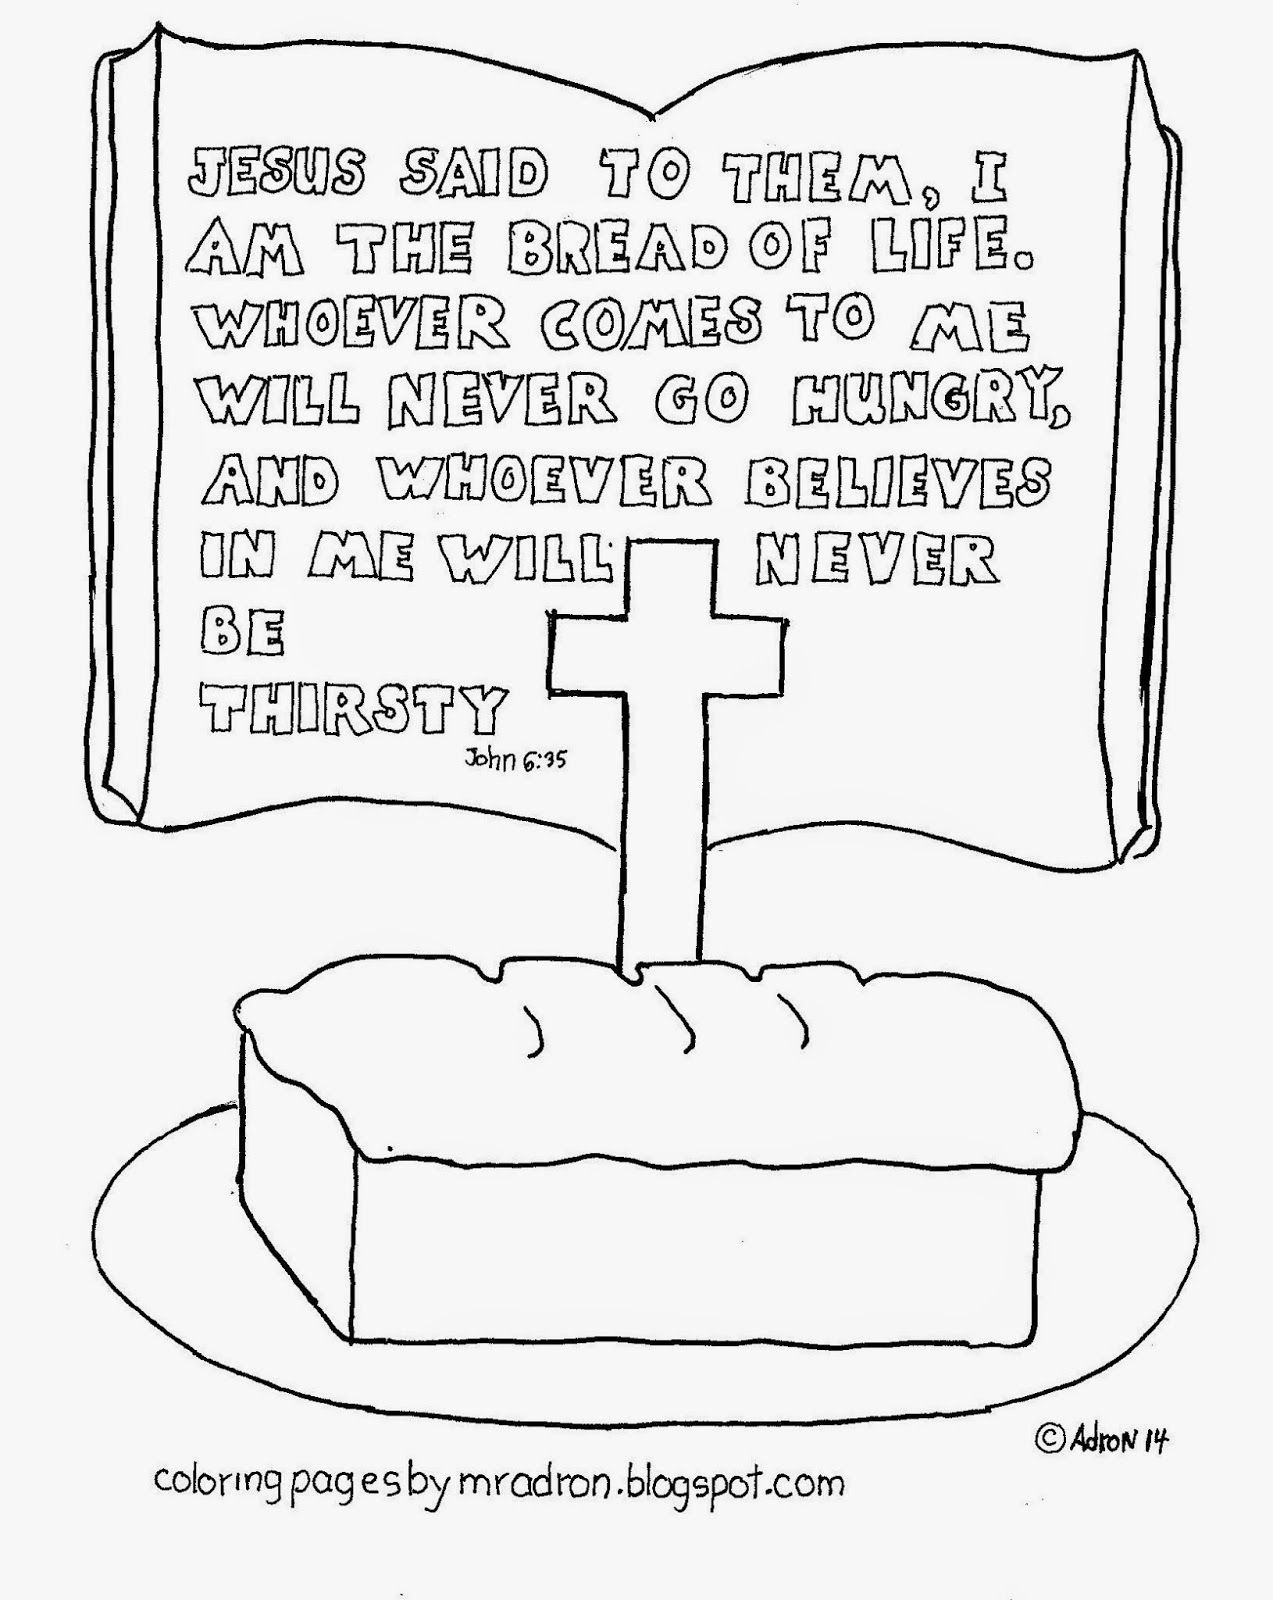 I Am The Bread Of Life Free Coloring Page Bible Stories For